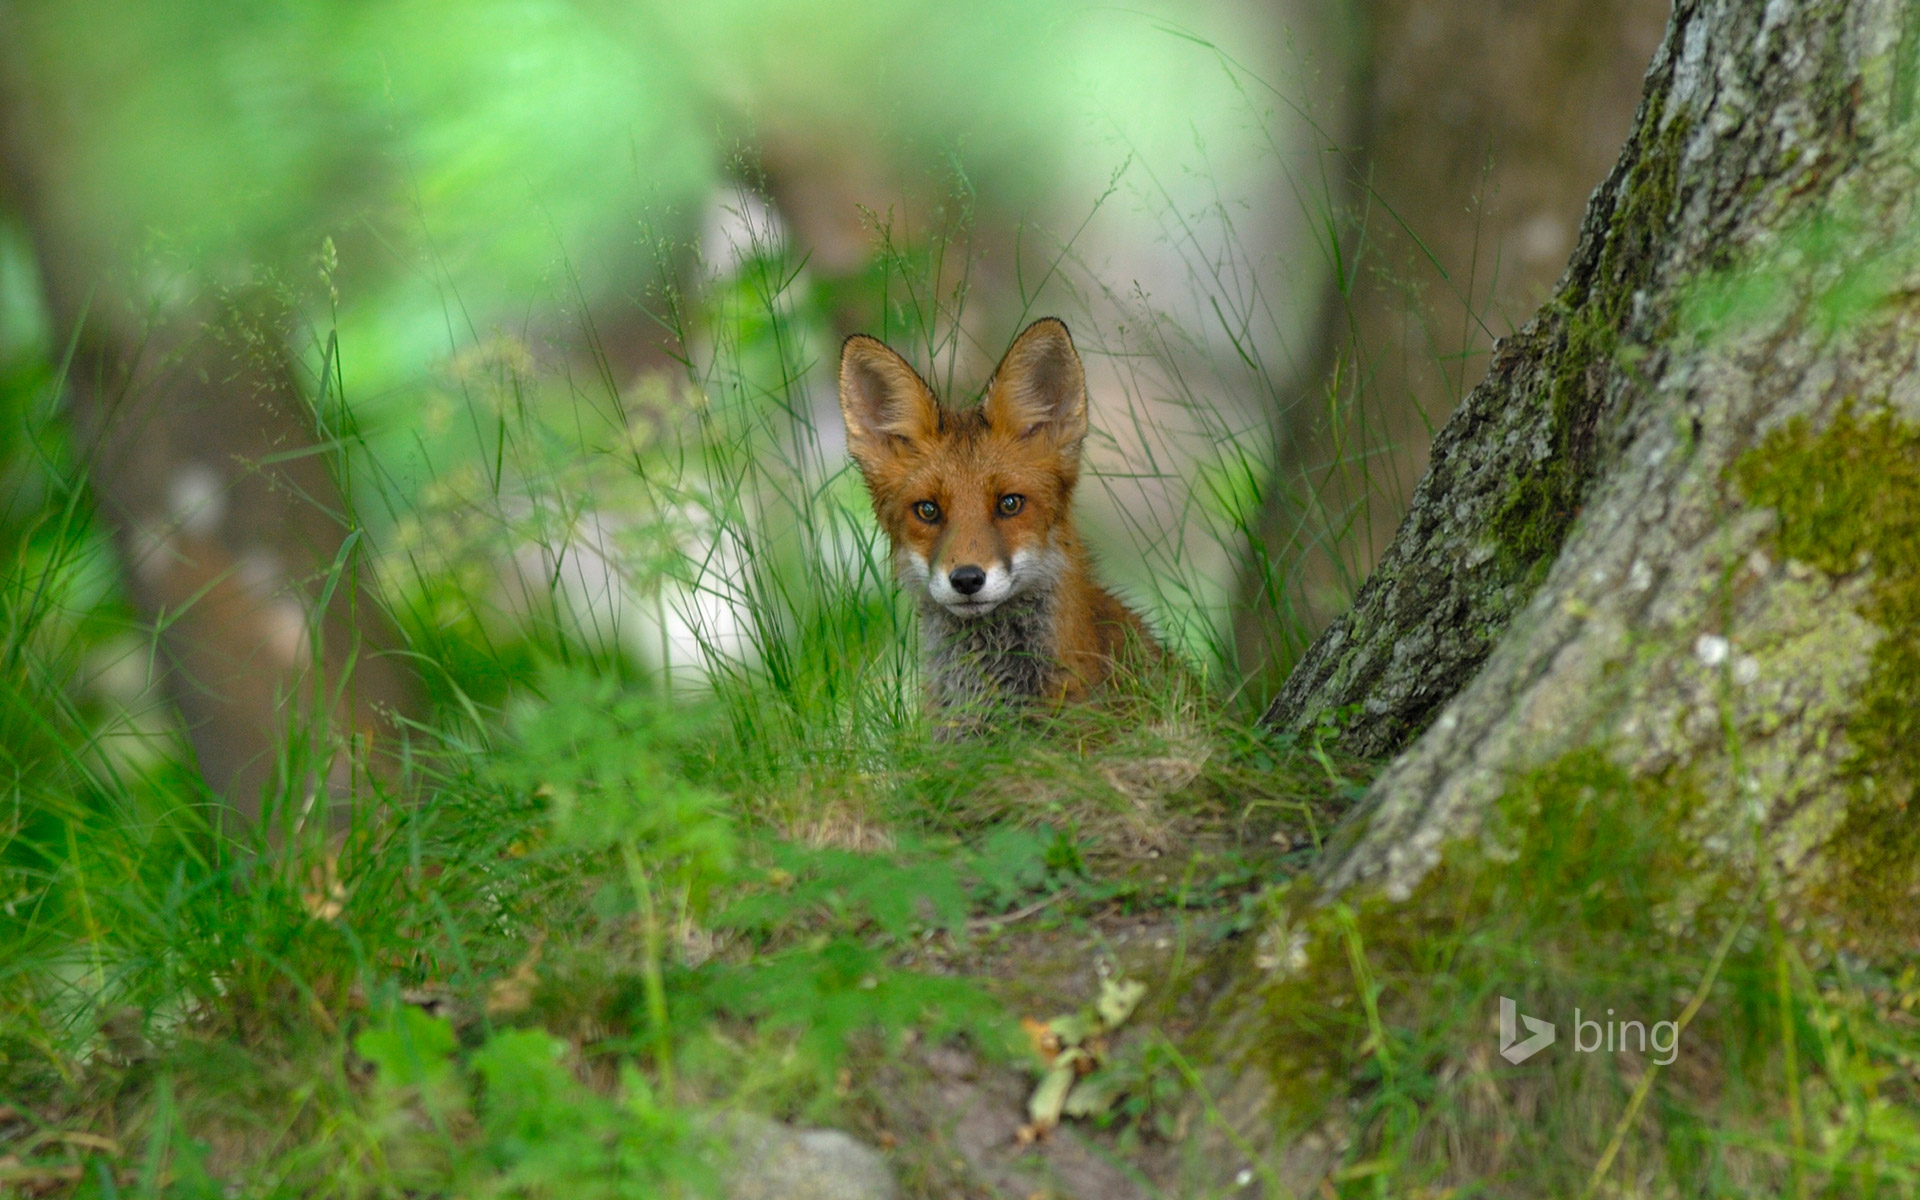 A red fox in the forest of Elfvik near Lidingö, Sweden